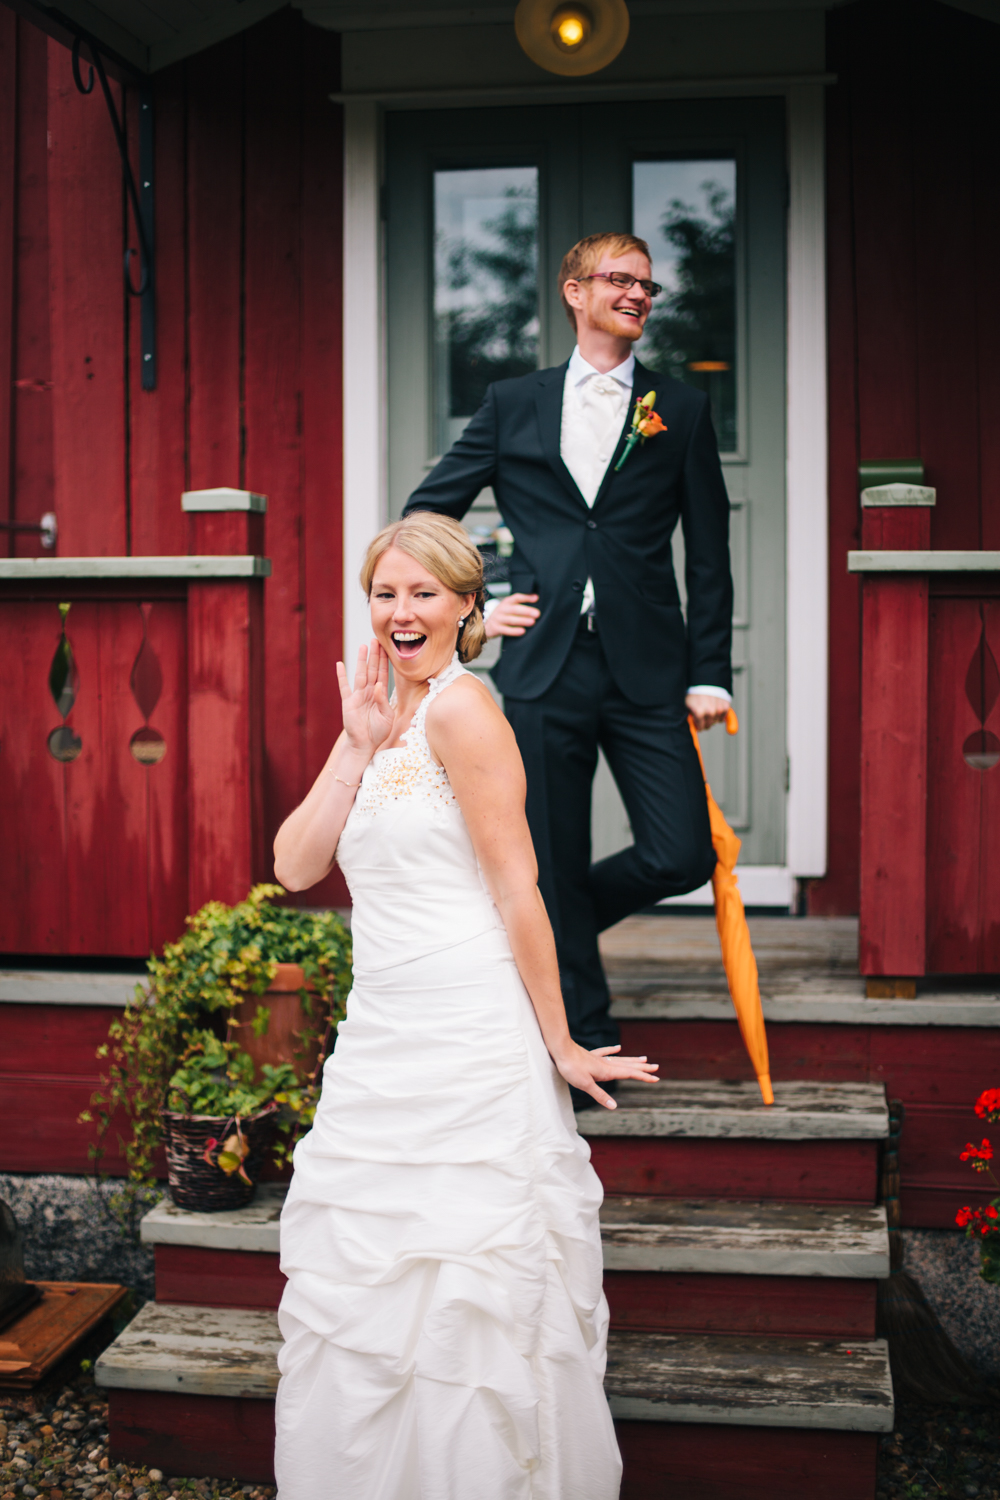 wedding_stina_johan-34.jpg